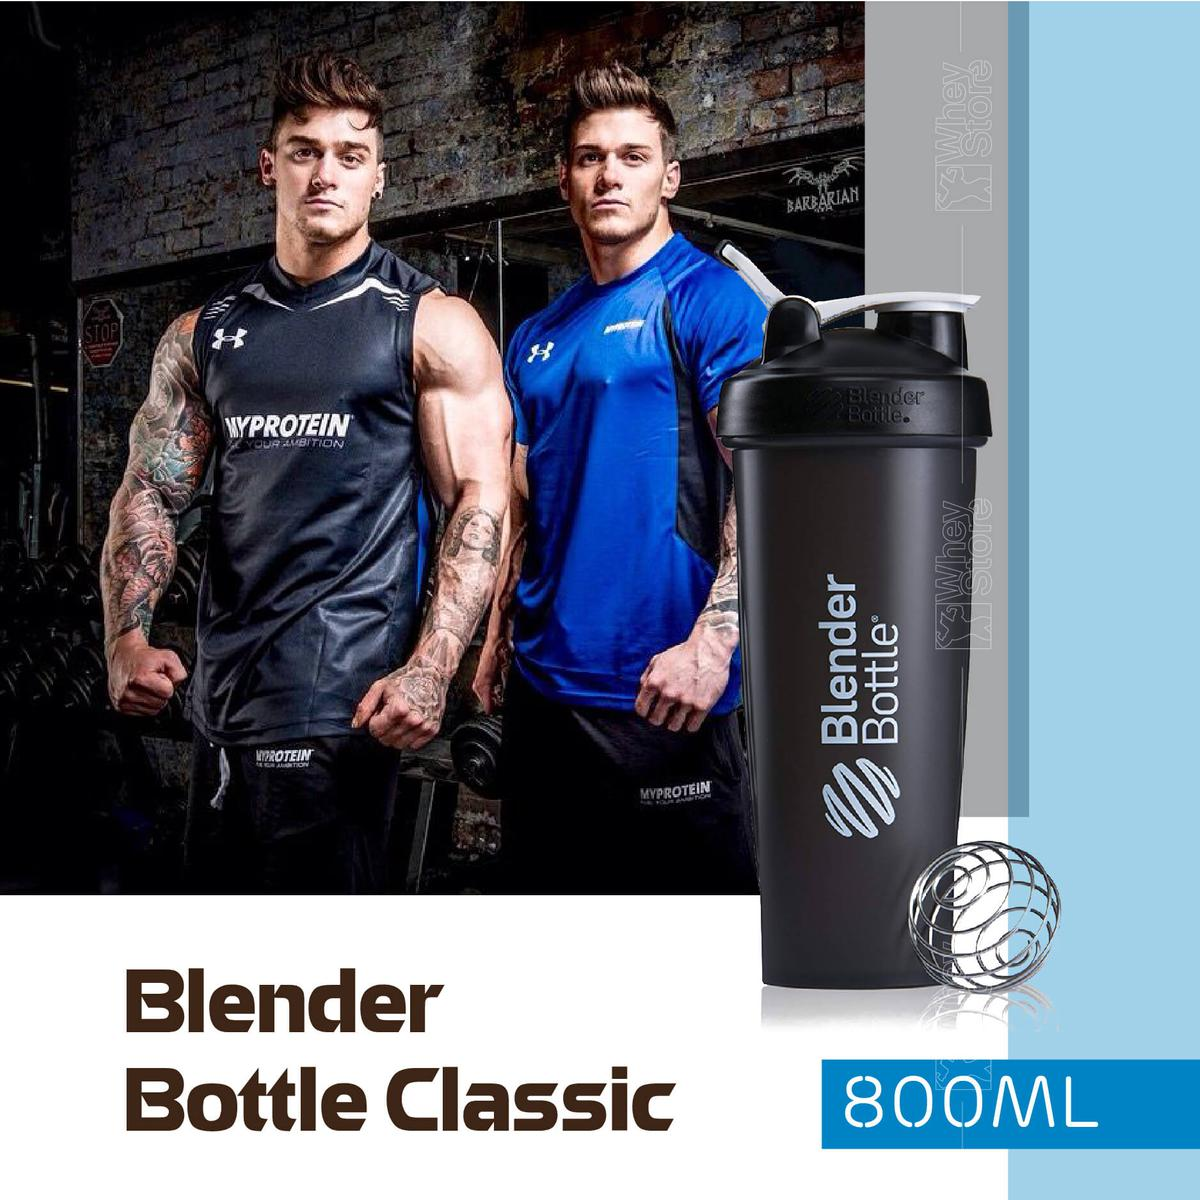 Blender Bottle Classic 800ml